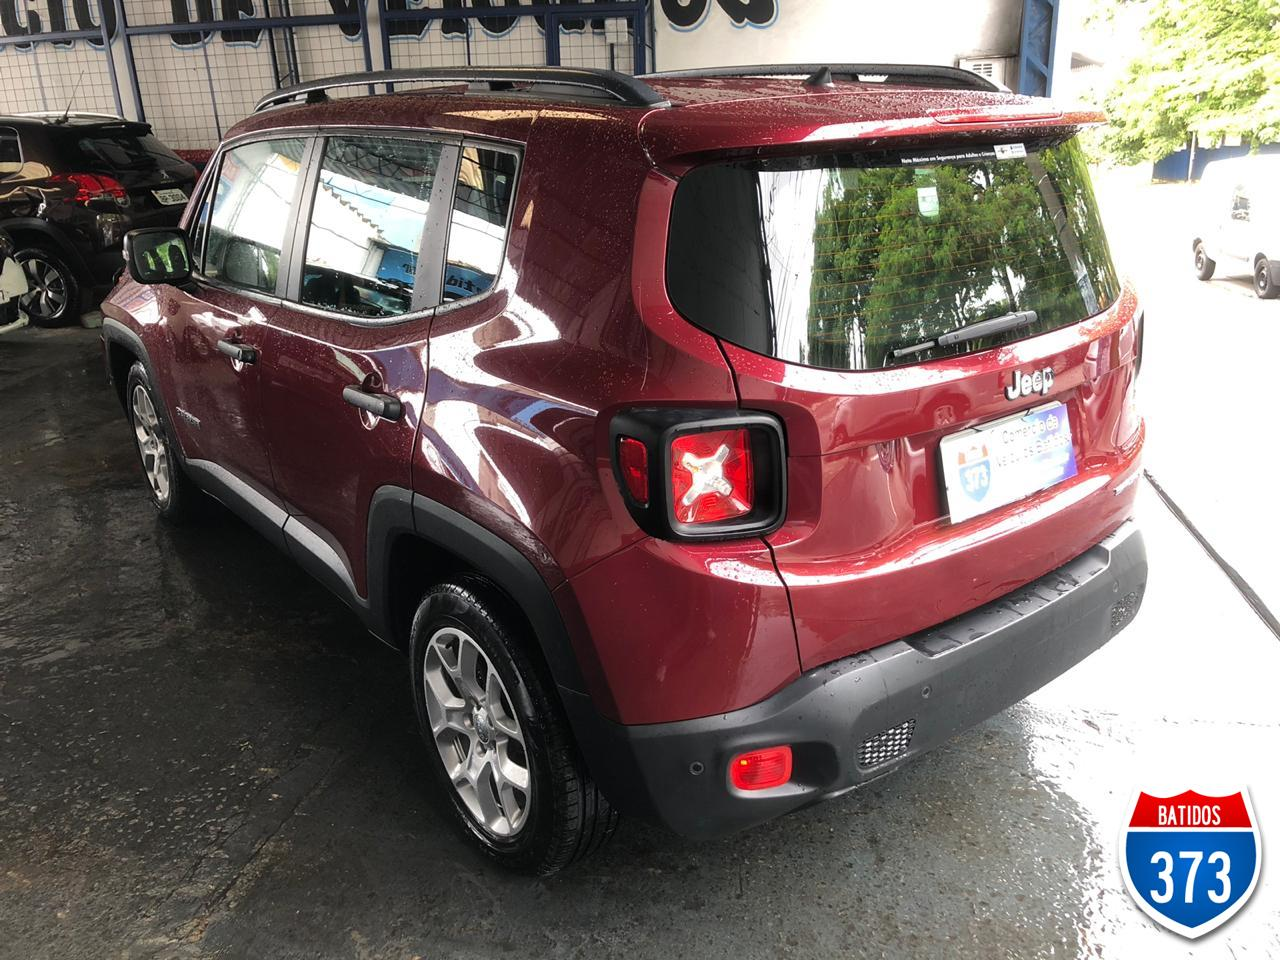 JEEP Renegade Sport 1.8 At  2018 Batido, Foto 16322